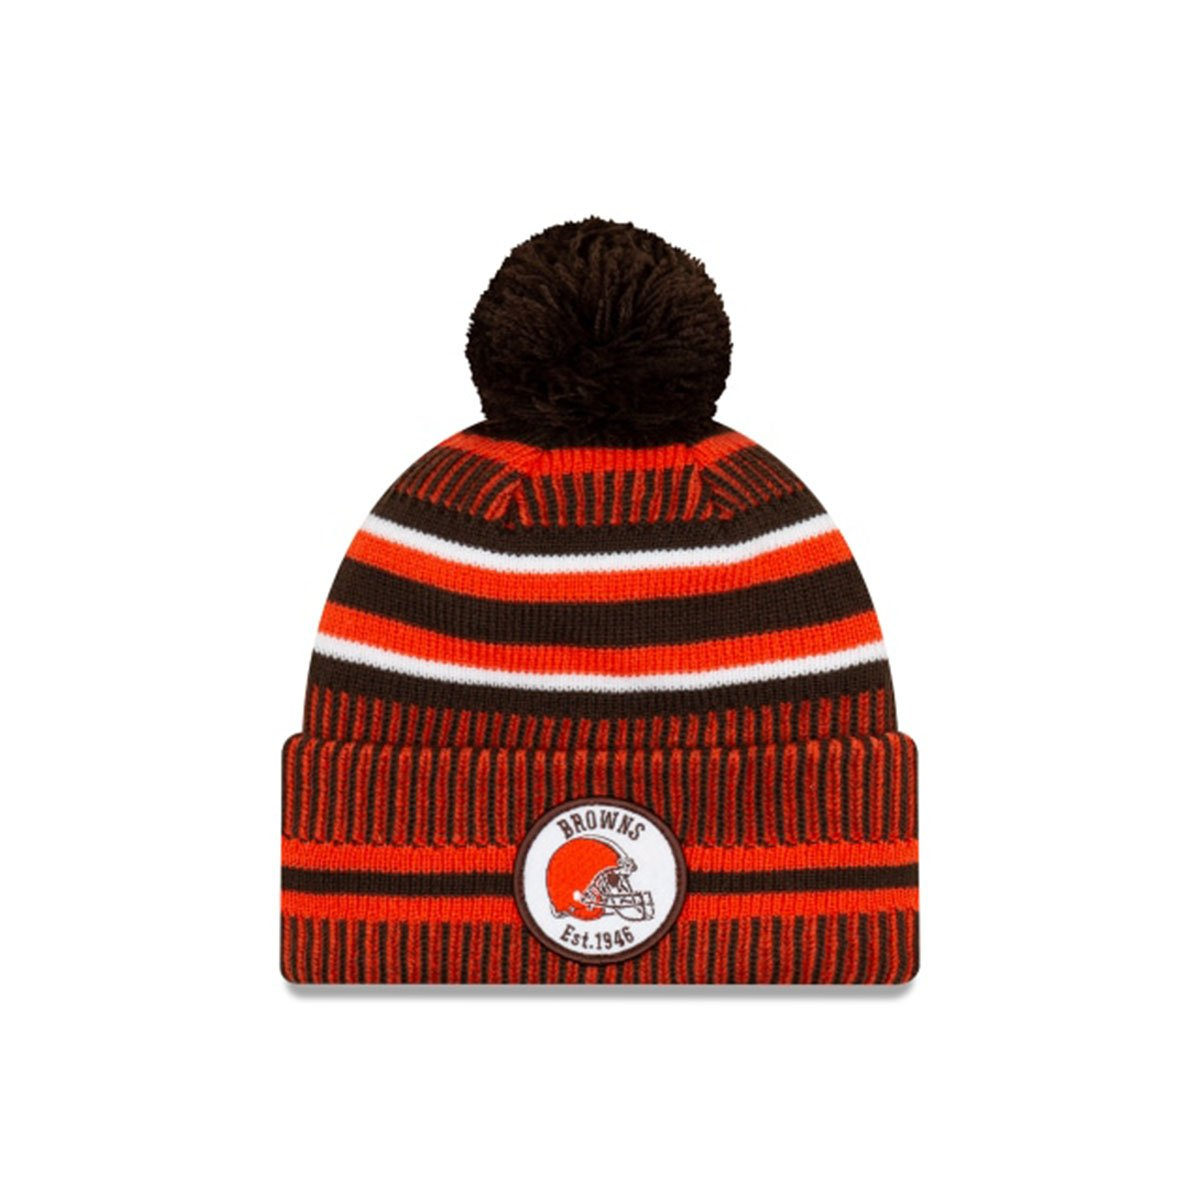 CLEVELAND BROWNS OFFICIAL NFL SIDELINE HOME COLD WEATHER SPORT KNIT ORANGE/BROWN